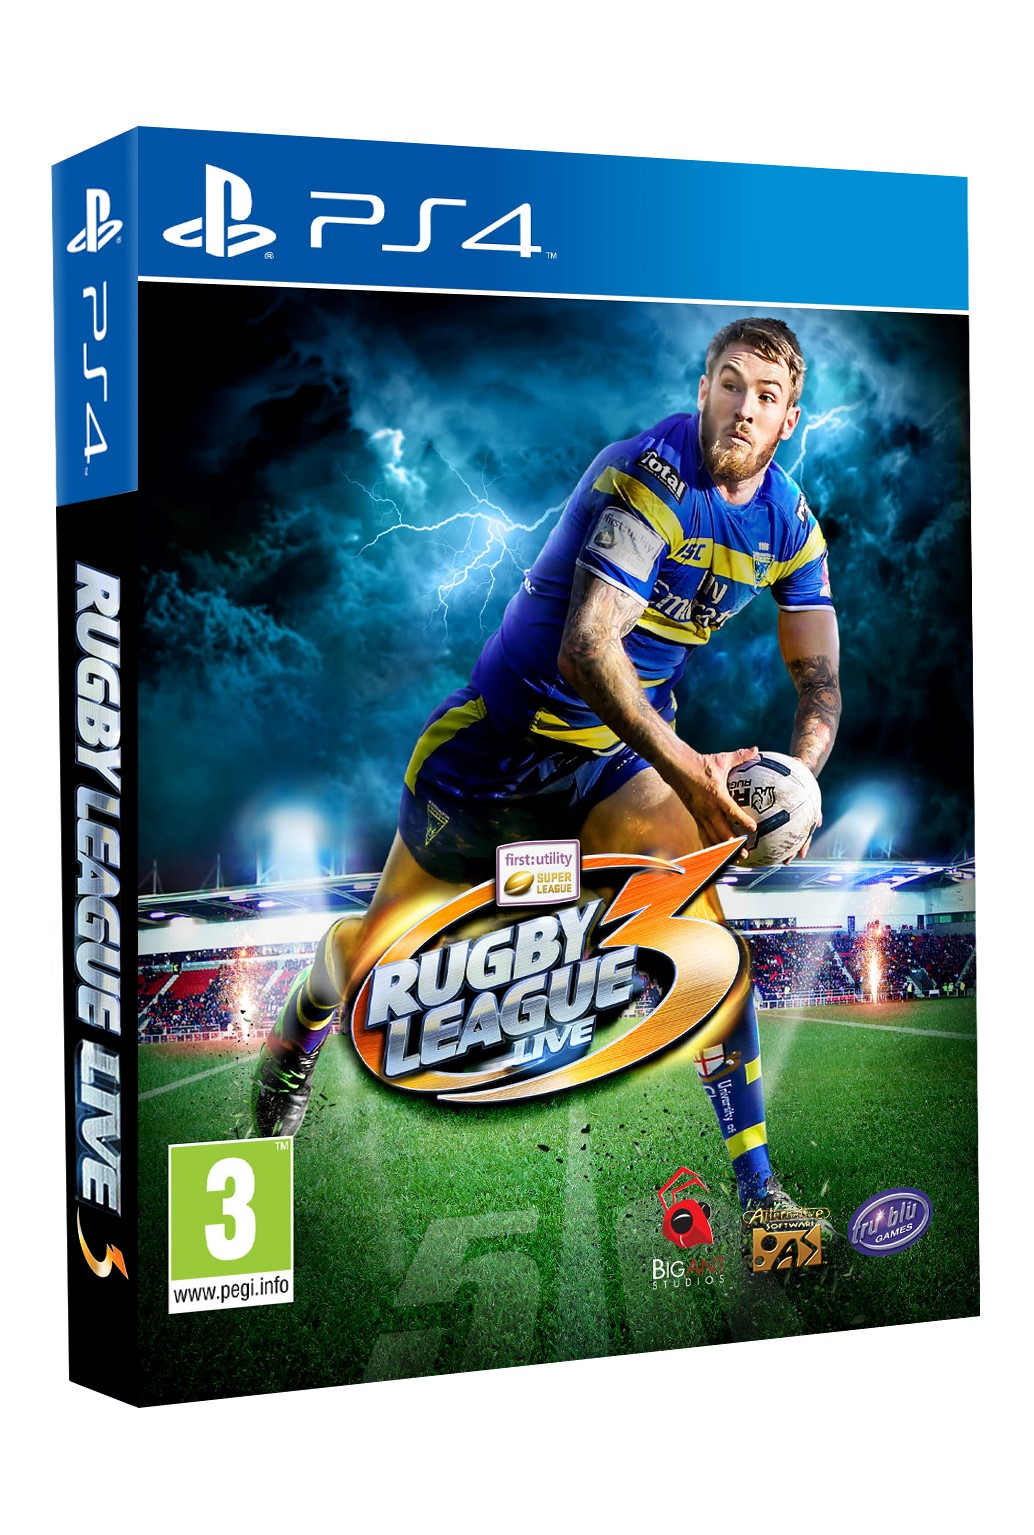 aus rugby league